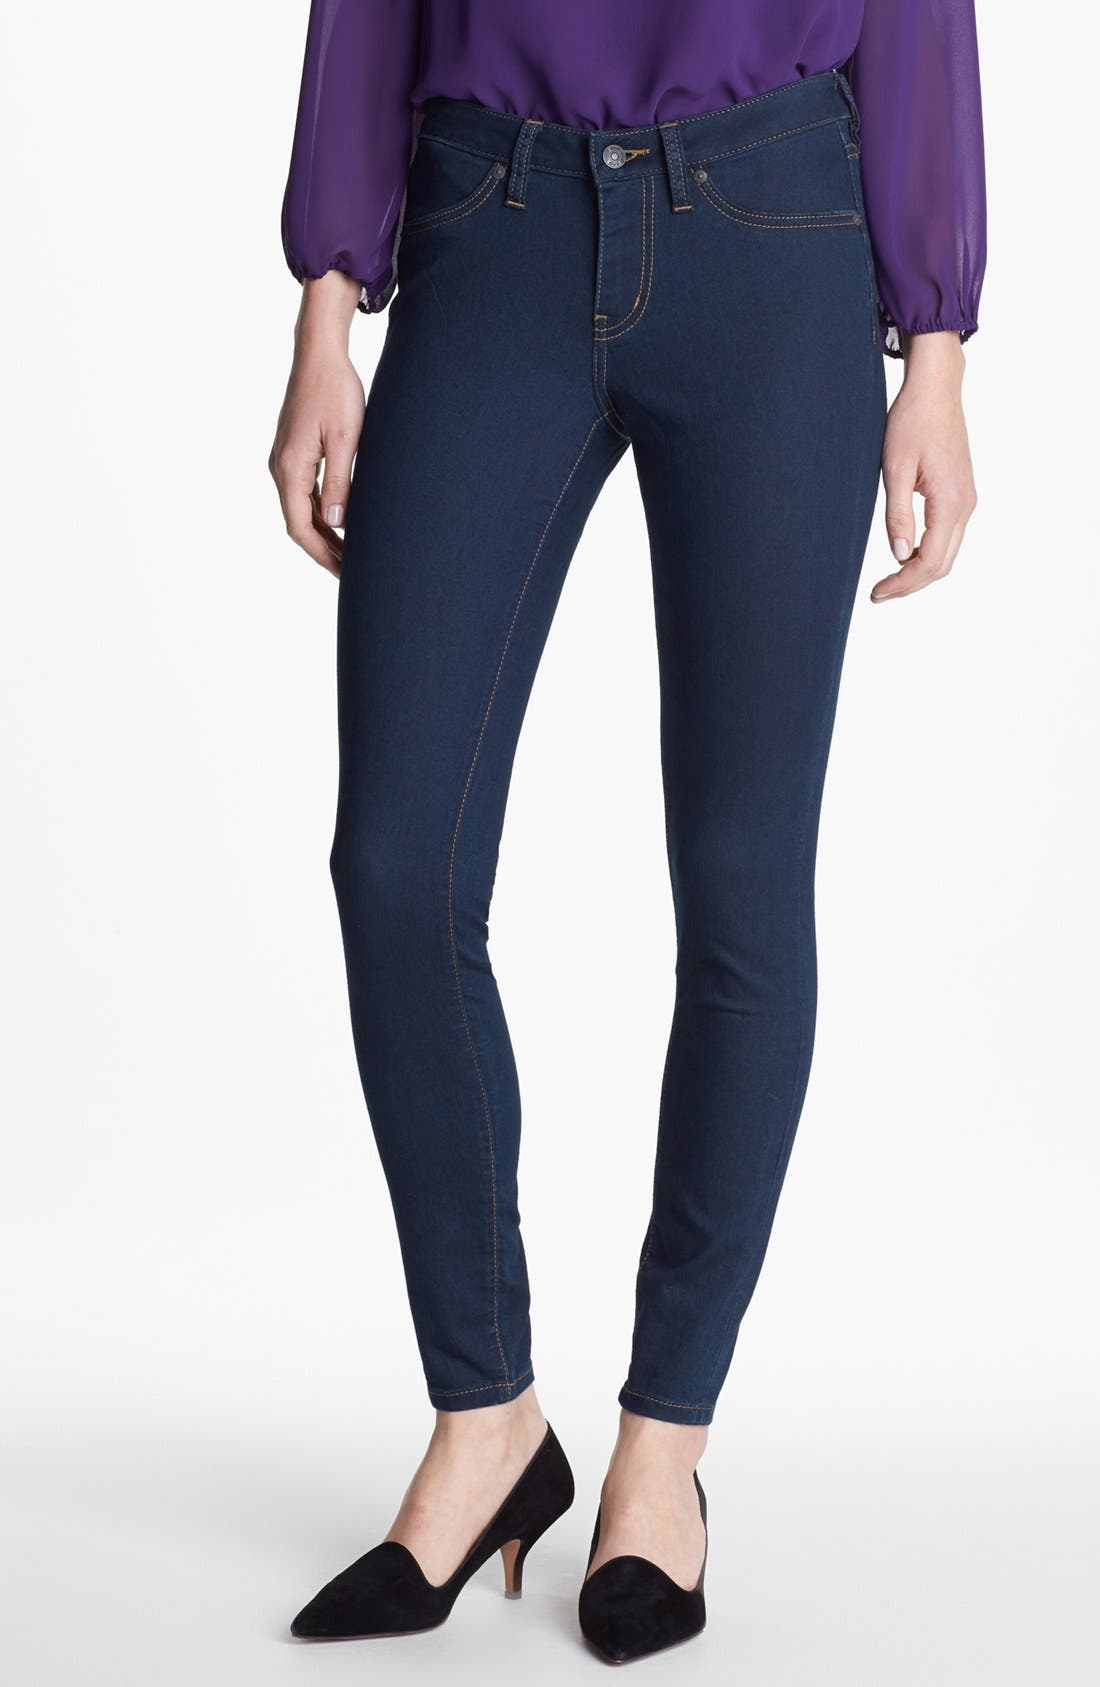 Alternate Image 1 Selected - Jag Jeans 'Olivia' Denim Leggings (Indigo) (Petite)